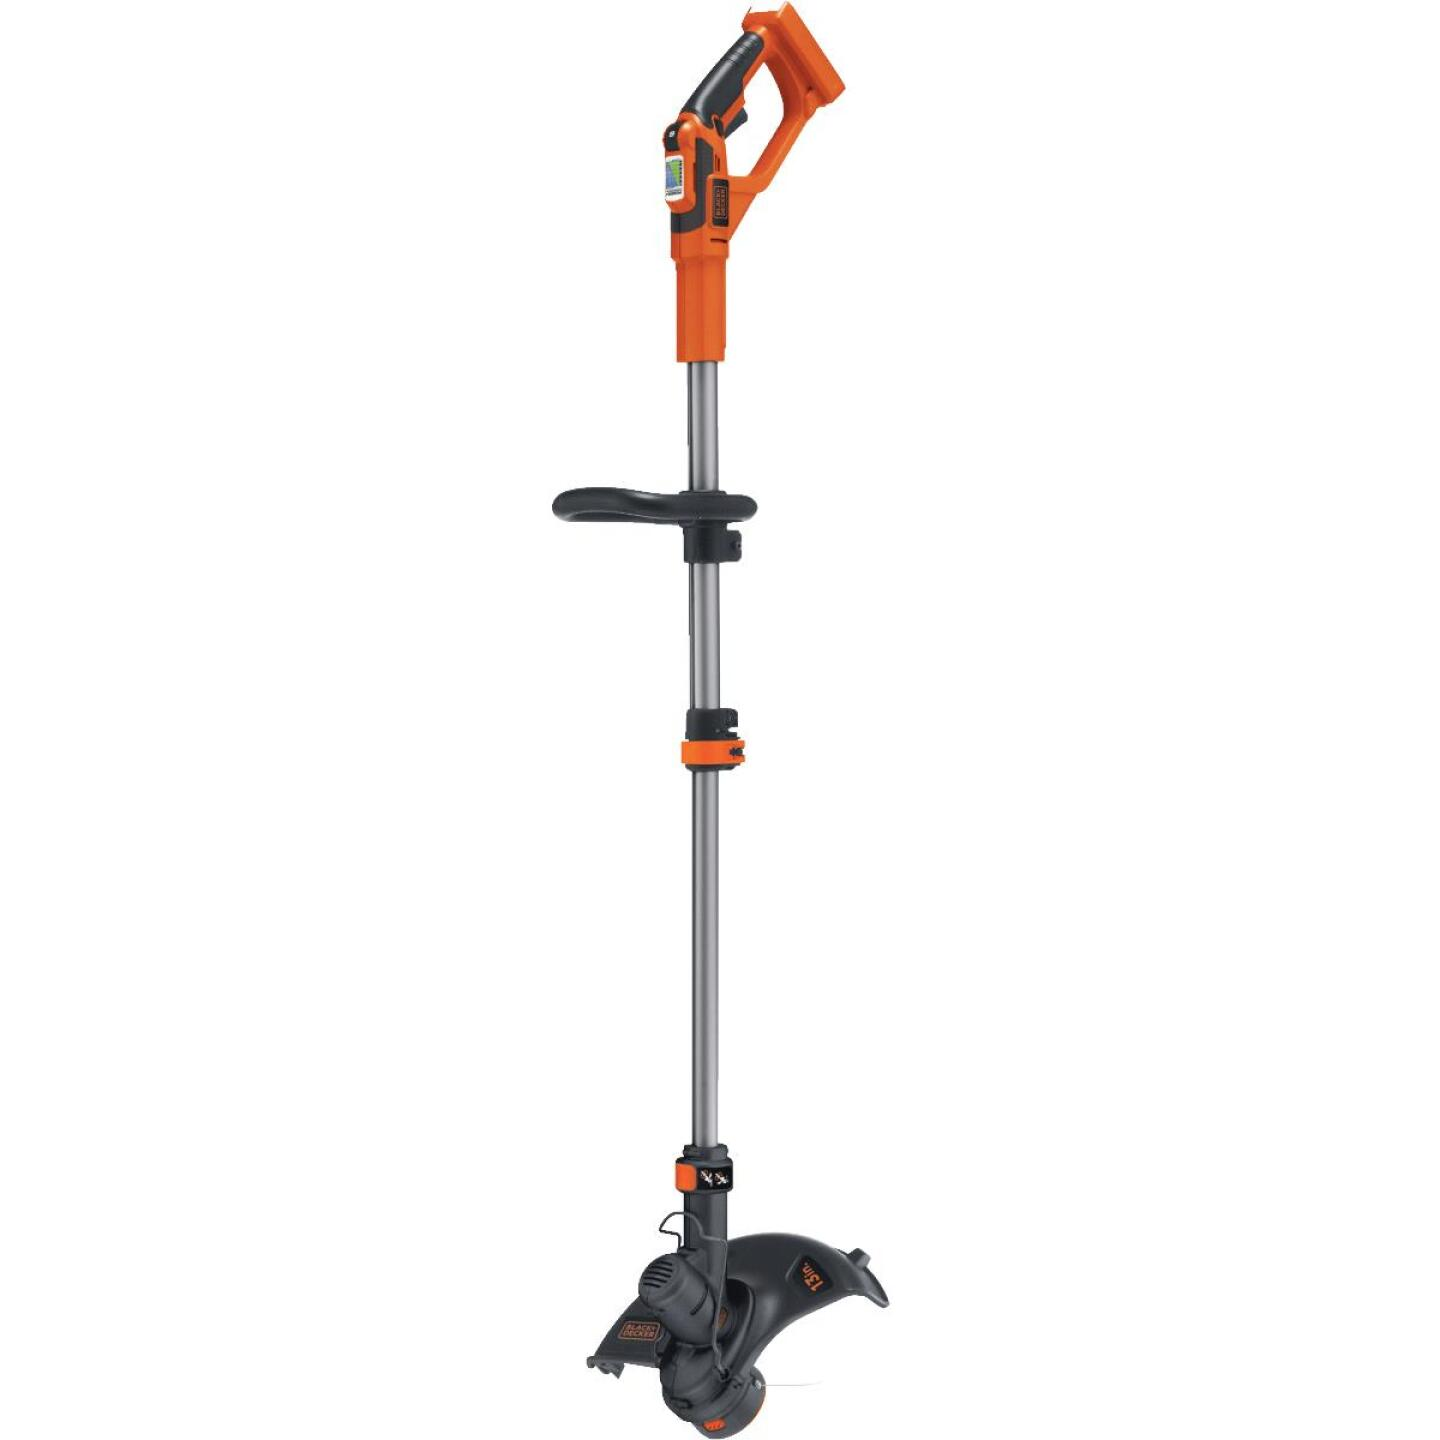 Black & Decker 40V MAX 13 In. Lithium Ion Straight Cordless String Trimmer Image 6